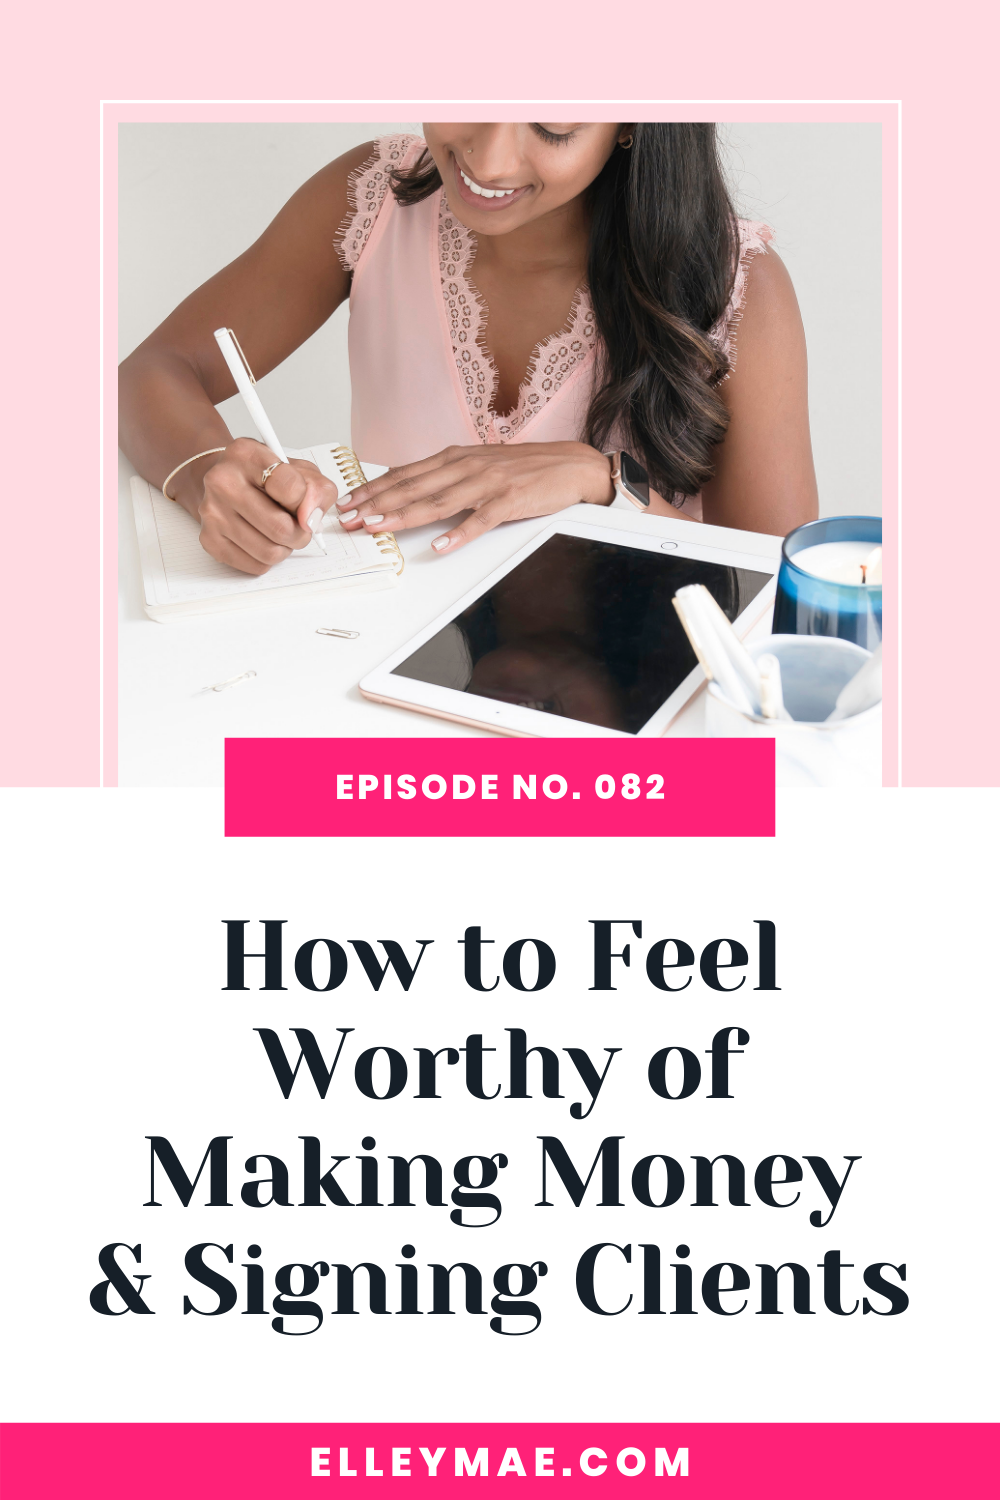 082. Feeling Worthy of Making Money & Signing Clients